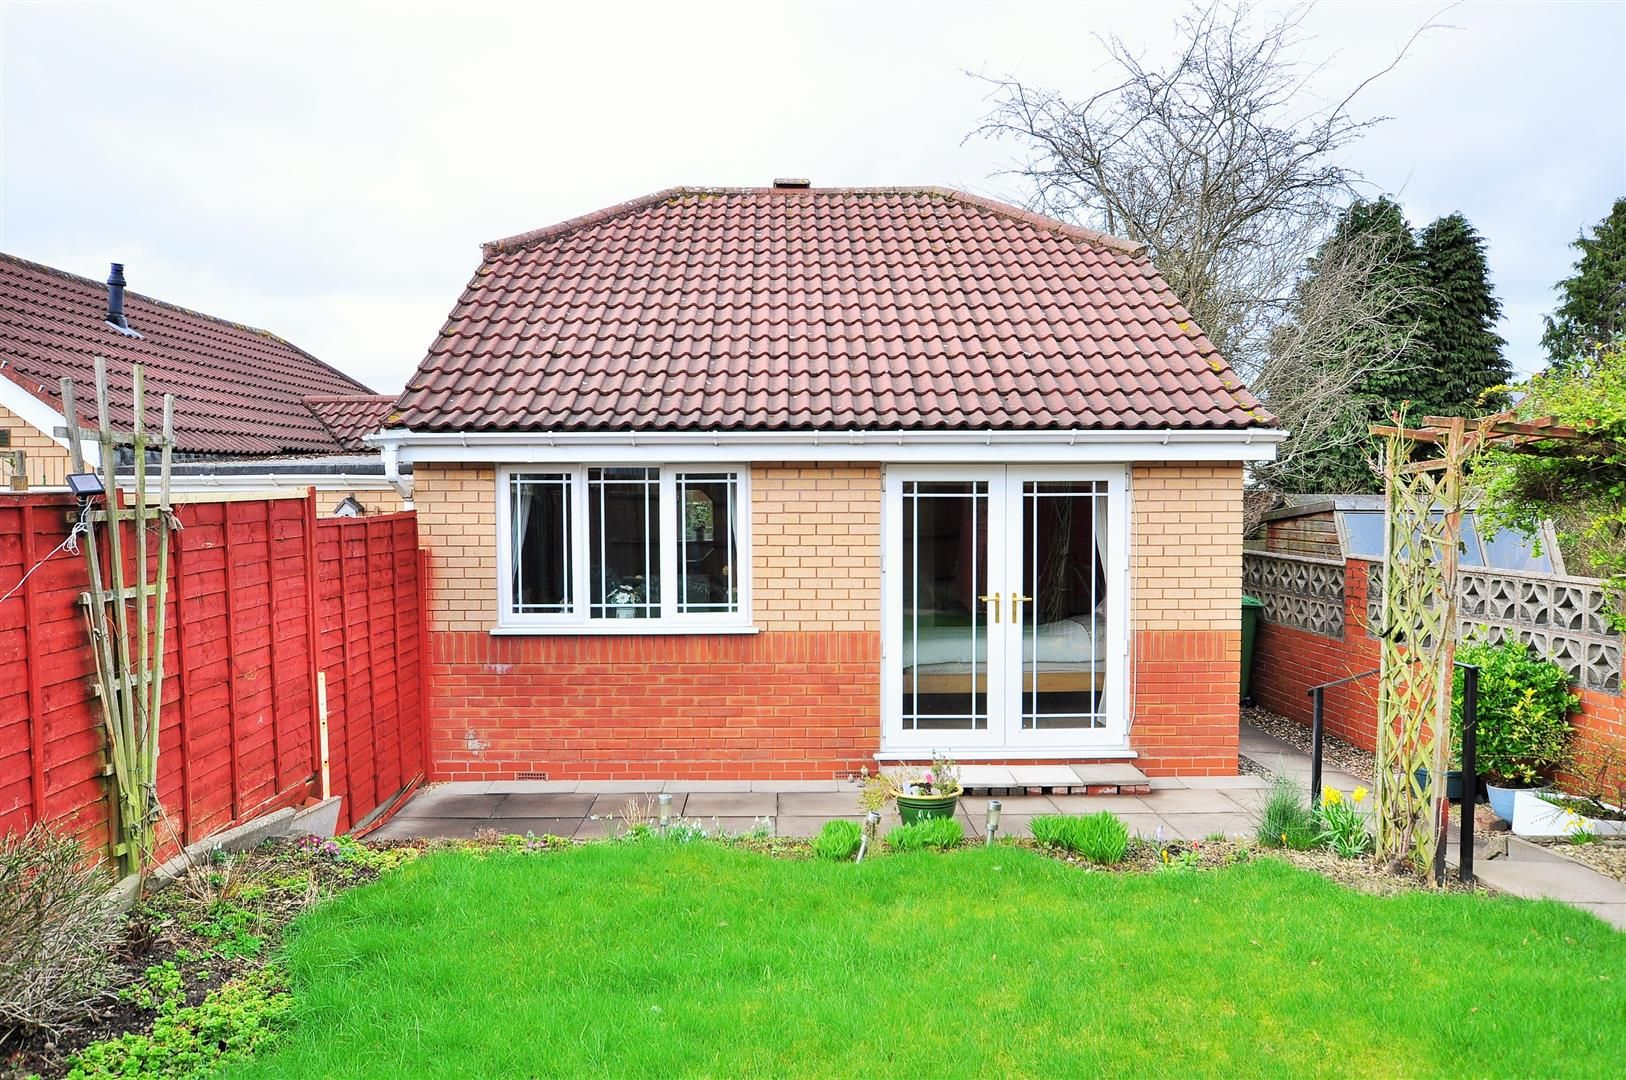 2 bed detached-bungalow for sale in Hurst Green  - Property Image 11